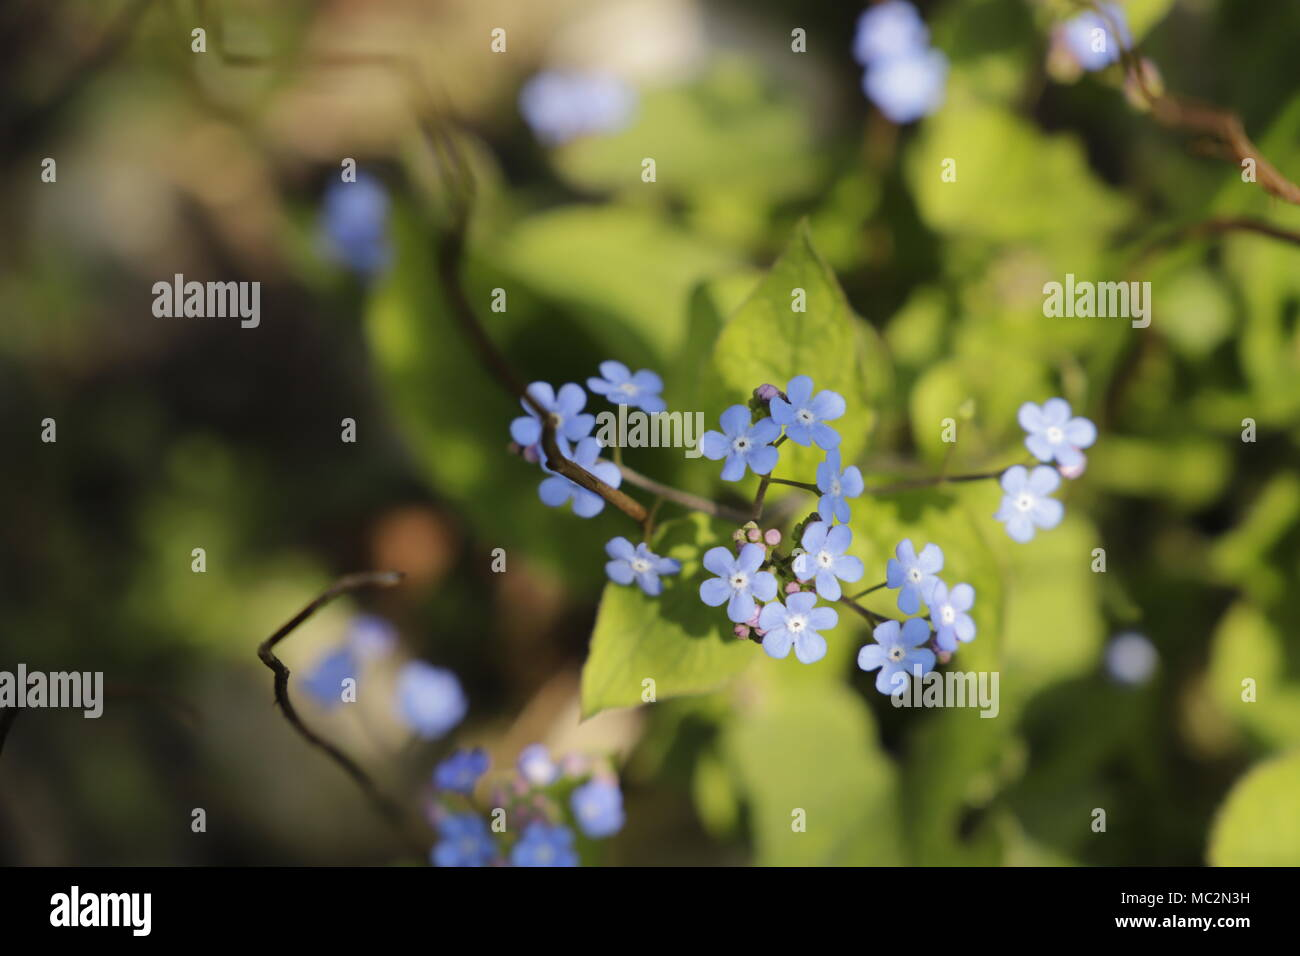 Forget Me Not Has Tiny Blue Flowers Stock Photo 179540021 Alamy